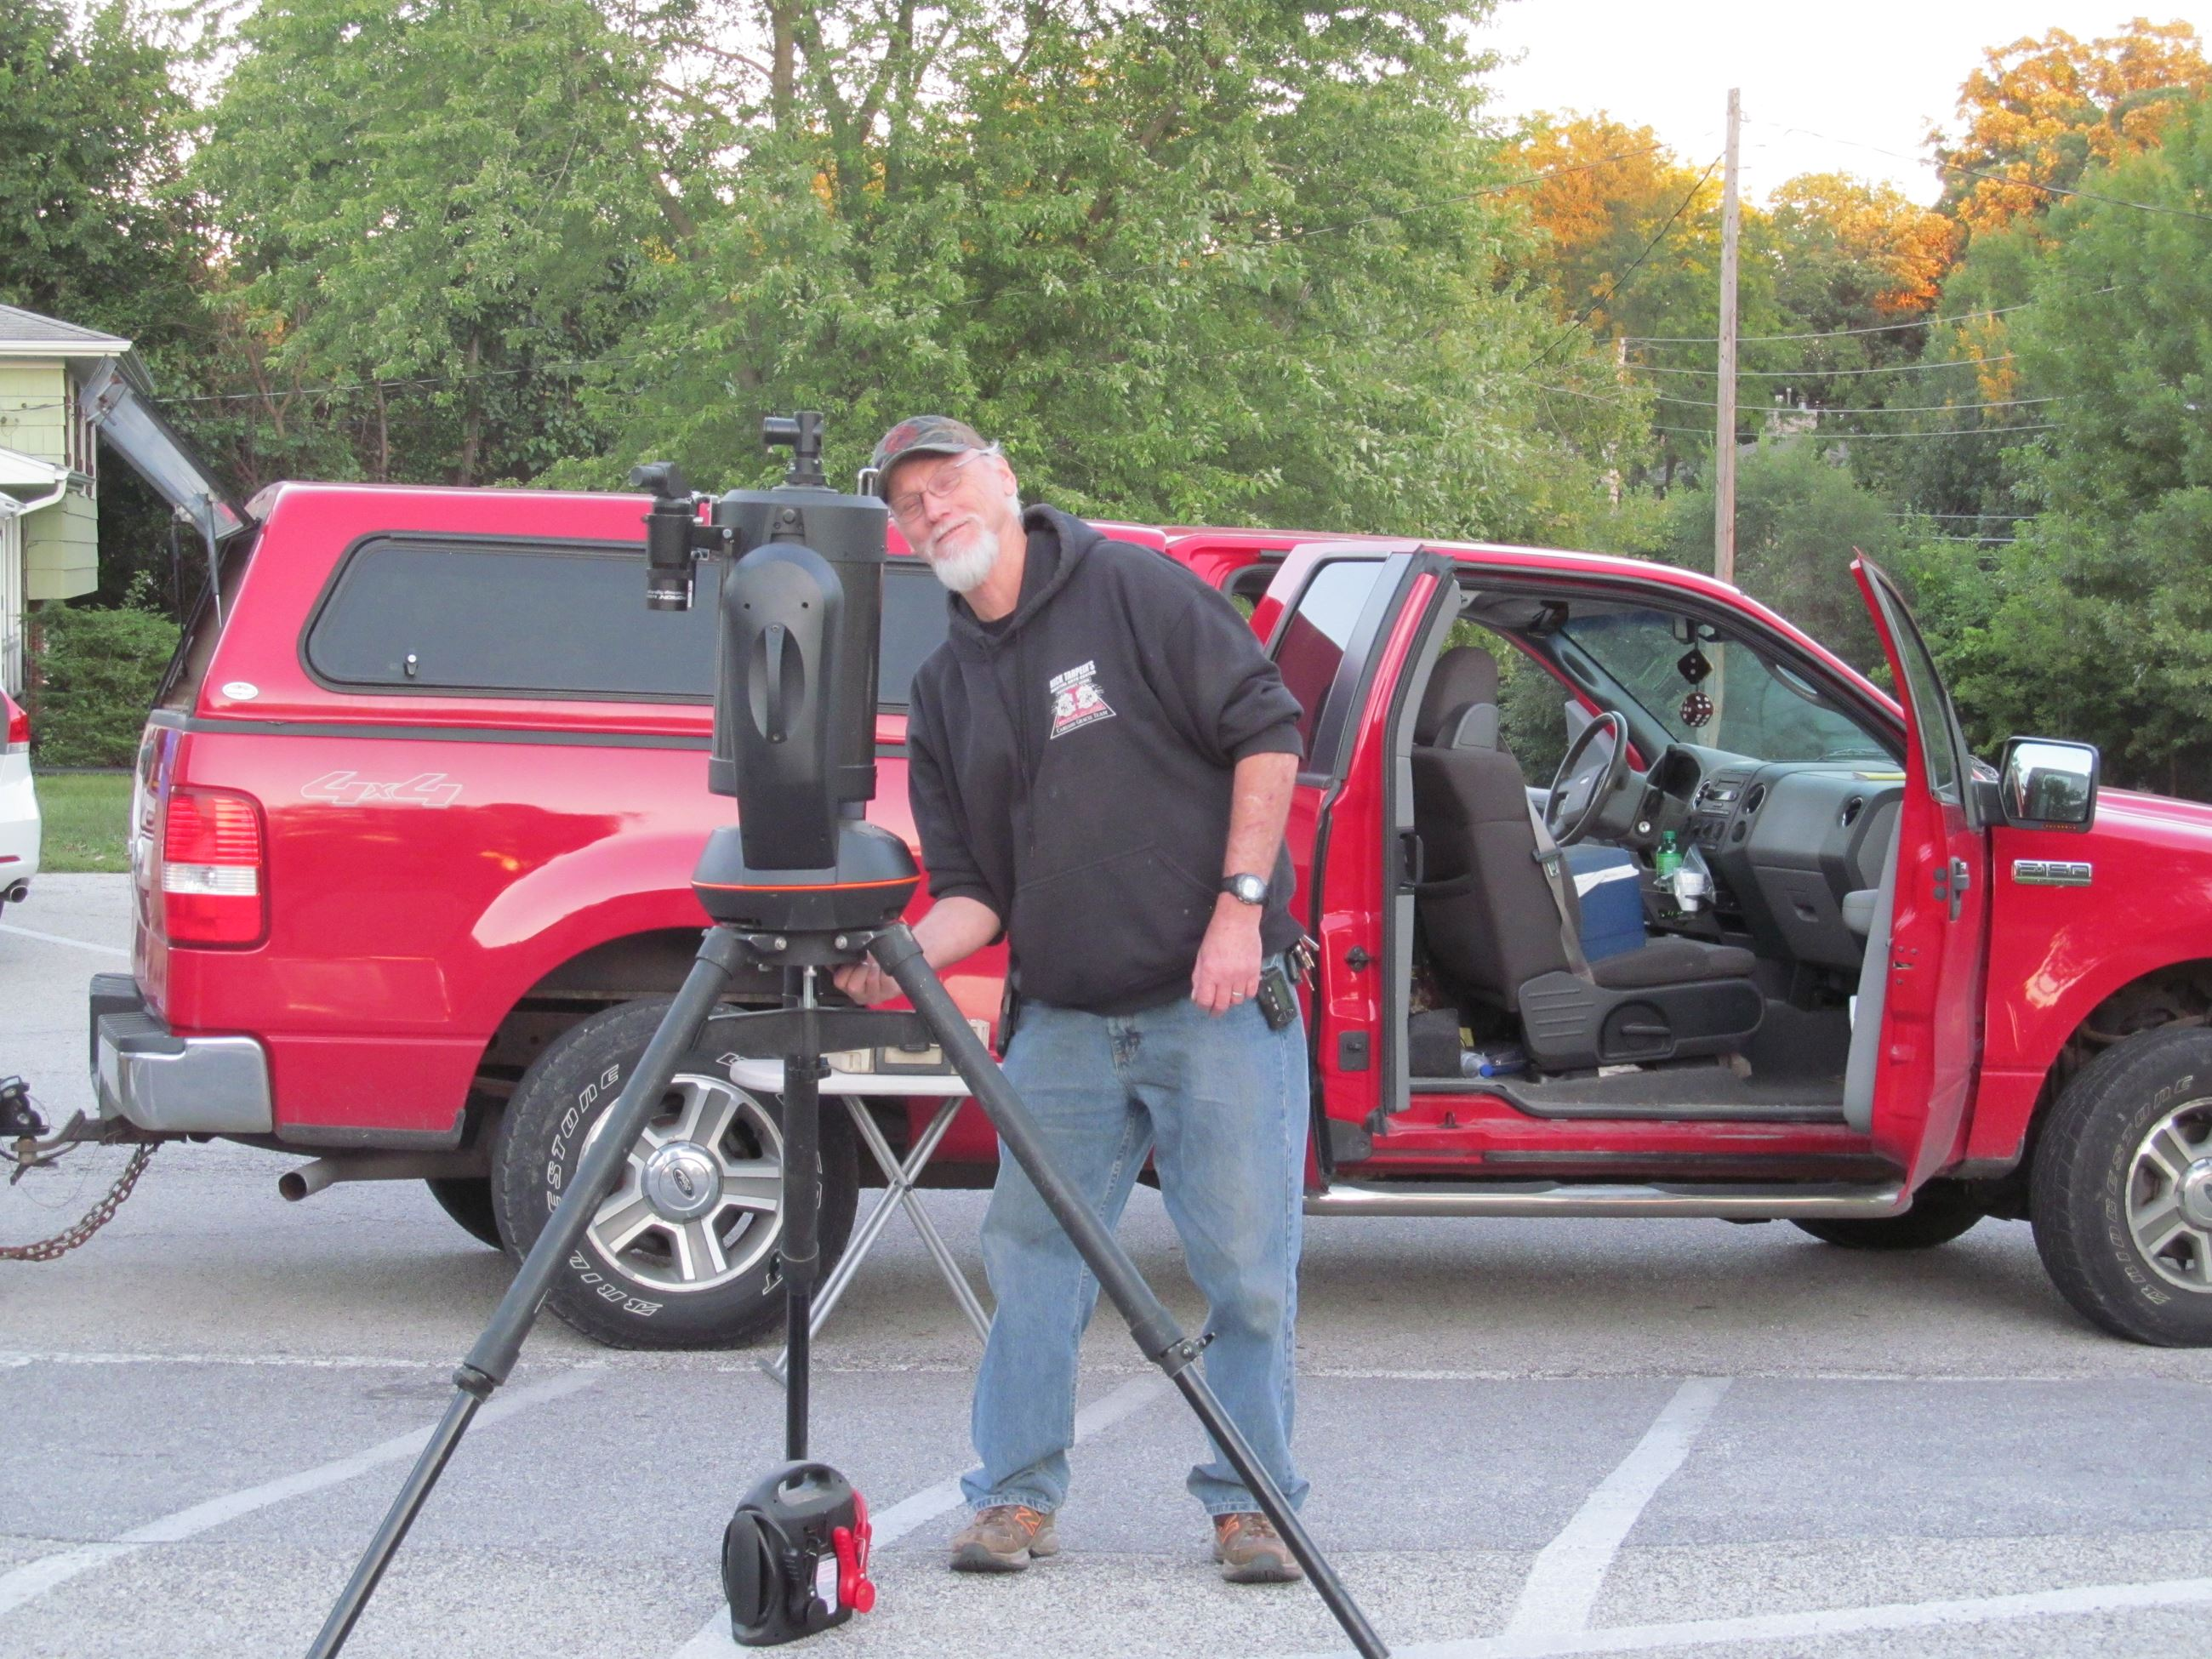 A Popular Astronomy Club member lines up his electronic telescope for star viewing